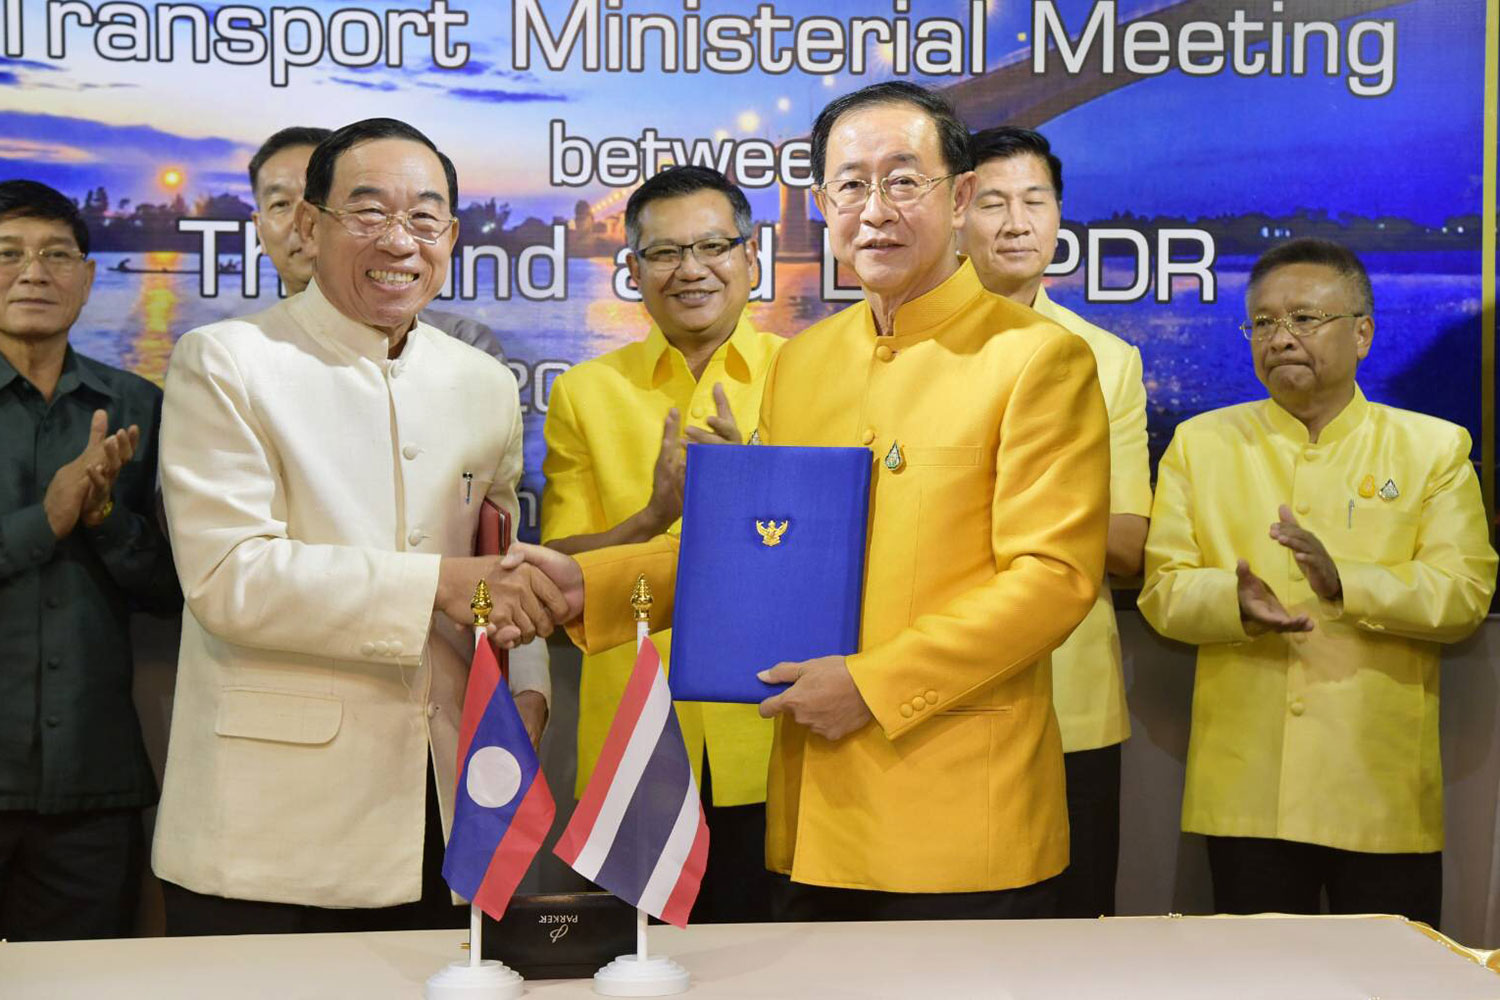 Laos' Minister of Public Works and Transport Bounchanh Sinthavong (left) shakes hands with Thai Transport Minister Arkhom Termpittayapaisith at the transport ministerial meeting at Amanta Hotel in Nong Khai province on May 20. (Supplied Photo via Thodsapol Hongtong)